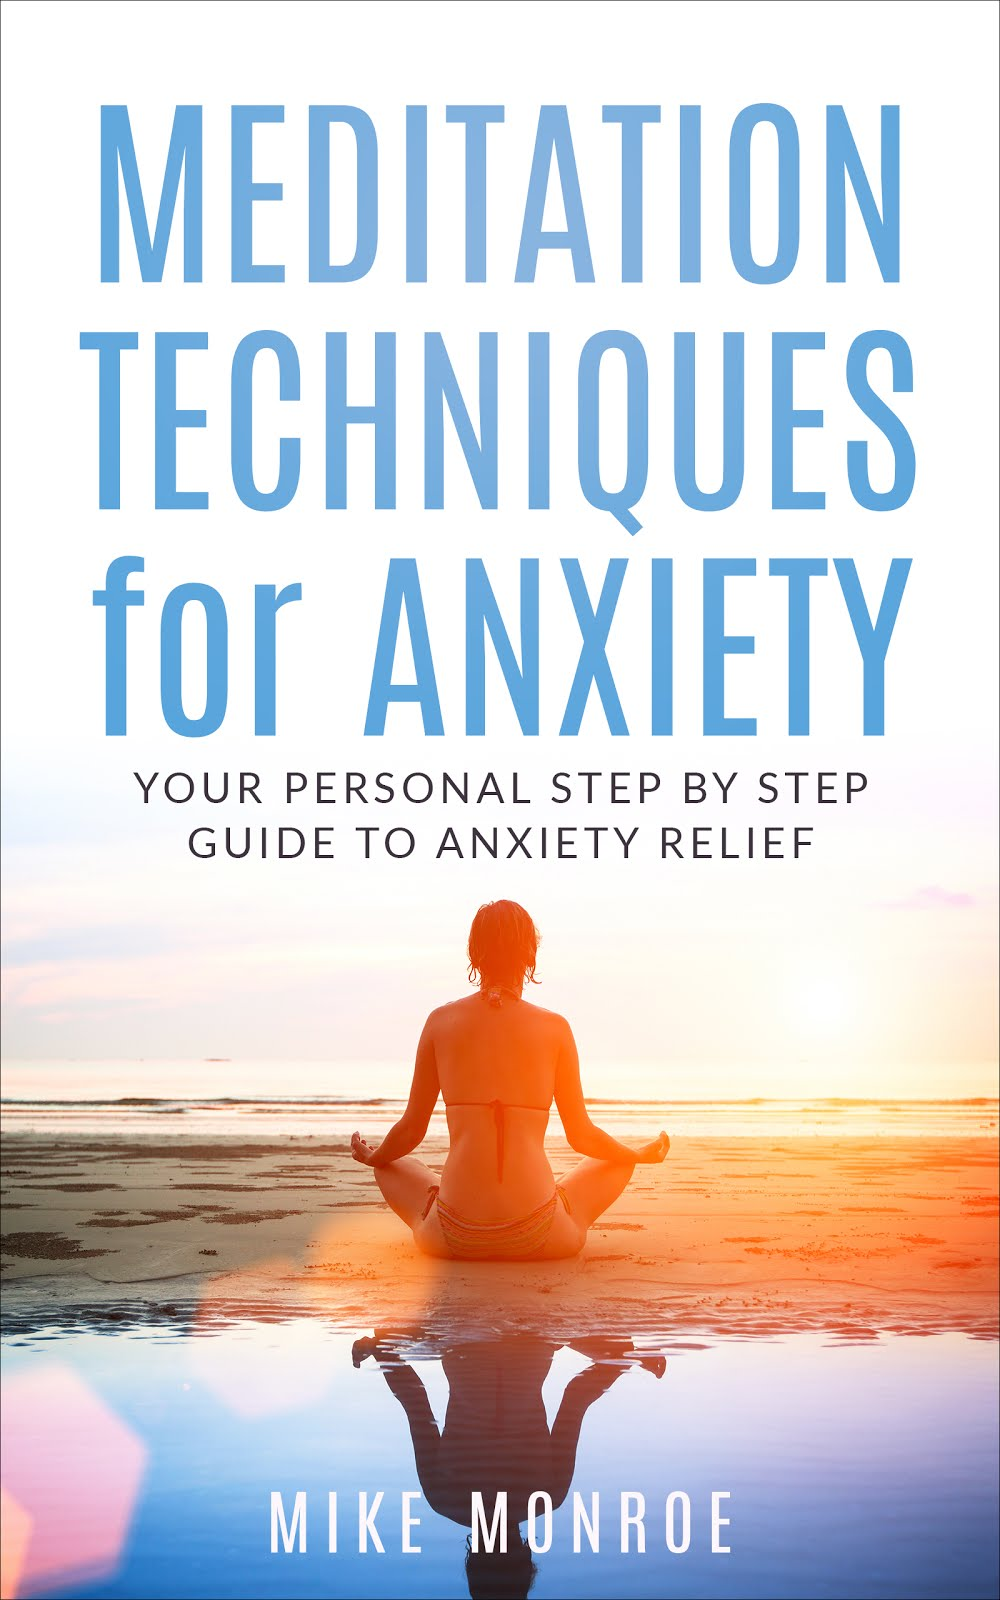 Meditation Techniques for Anxiety relief: Your Personal Step-by-Step Guide to Anxiety Relief